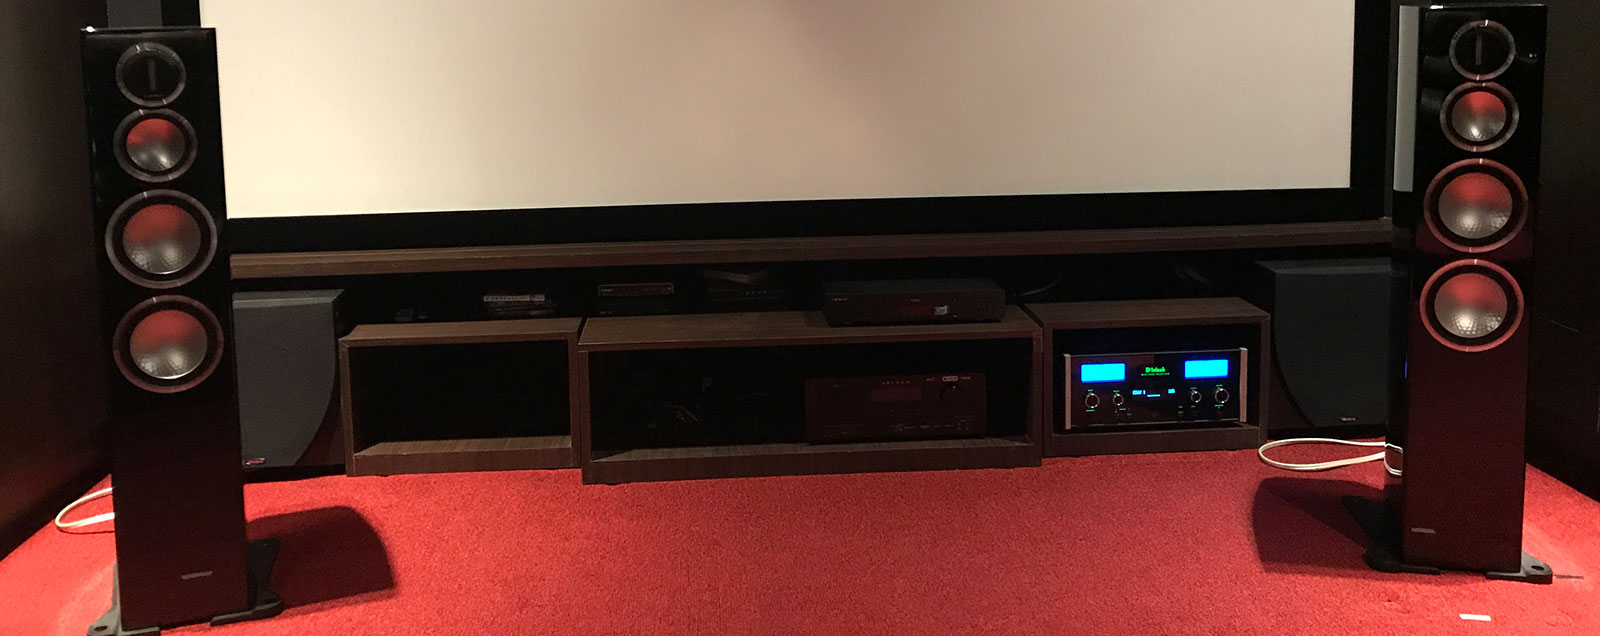 Home Theatre Audio Systems in Mumbai